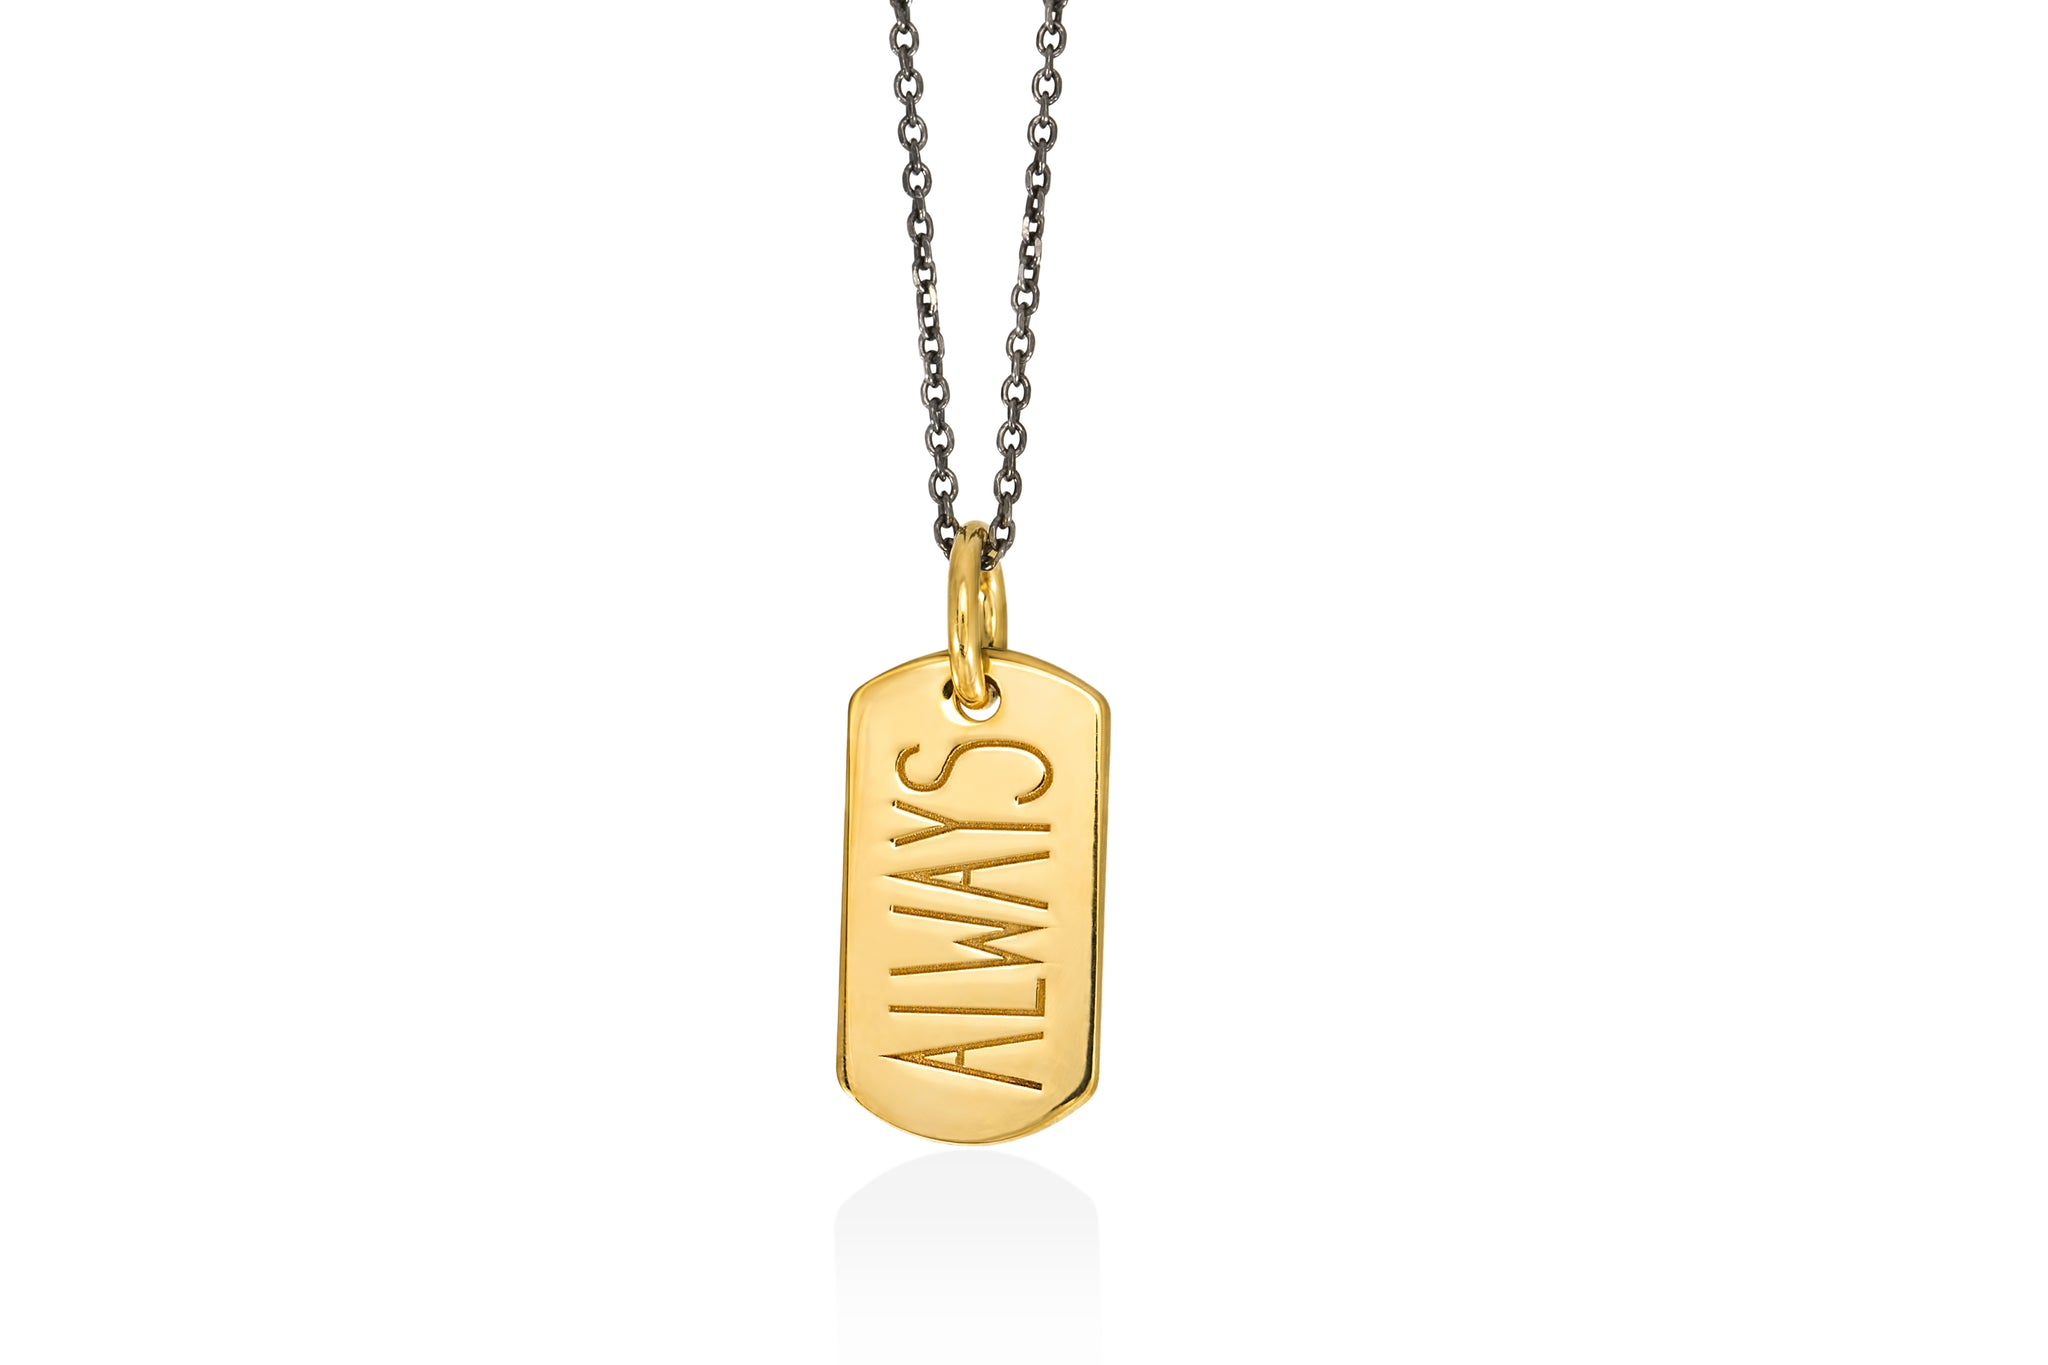 ALWAYS mini tag goldplated silver pendant